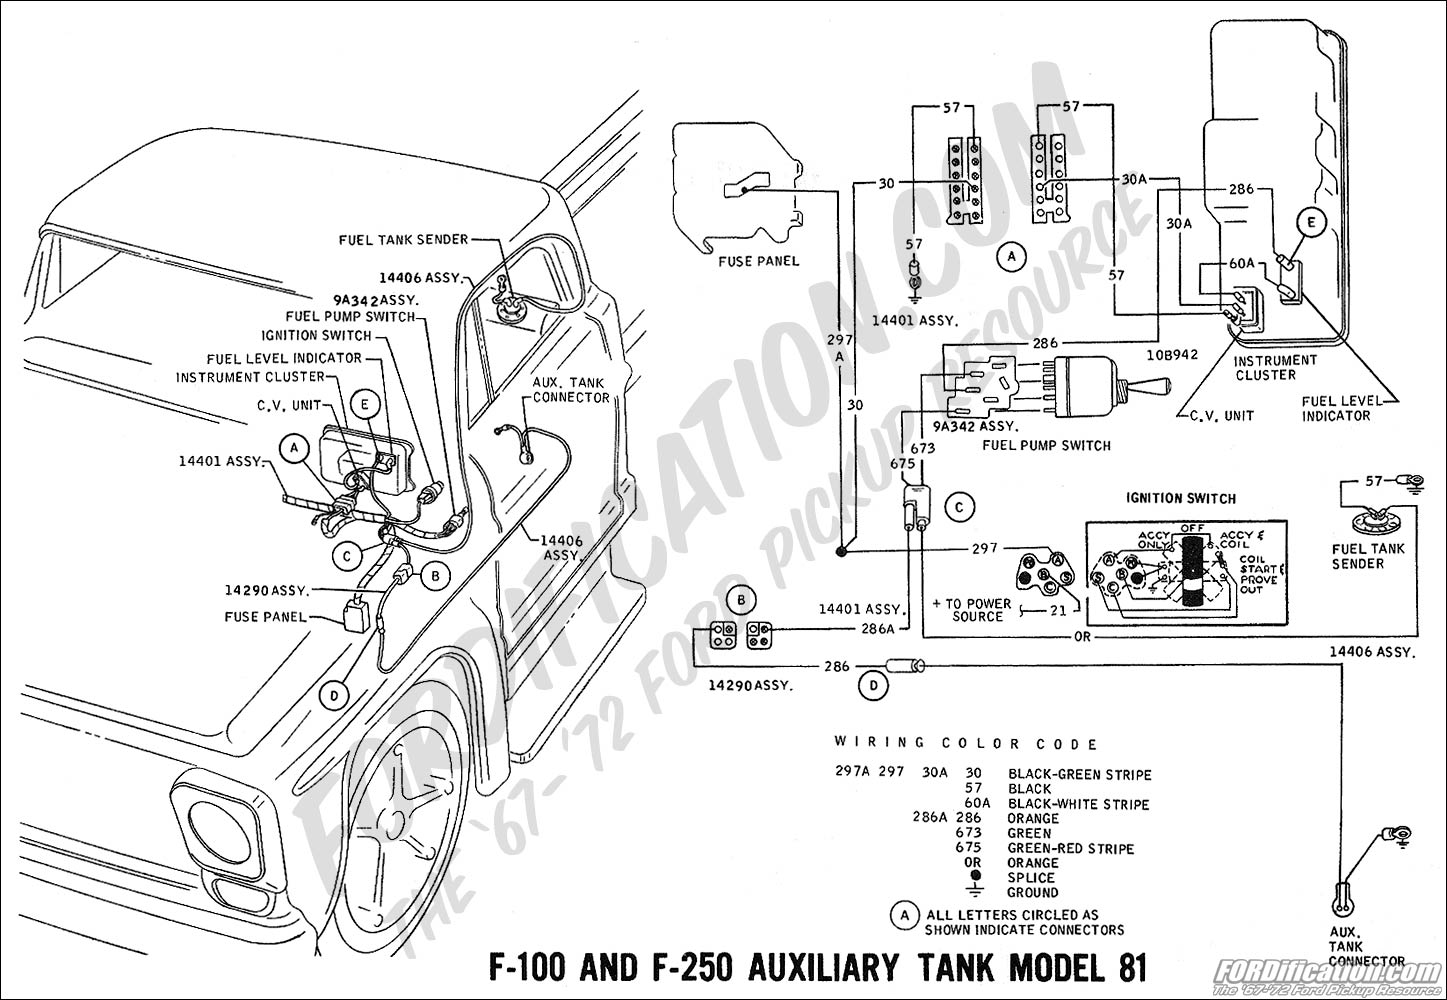 wiring_69aux fuel 69 f100 wiring diagram 1973 ford f100 wiring diagram \u2022 wiring Ford E-350 Fuse Box Diagram at gsmx.co